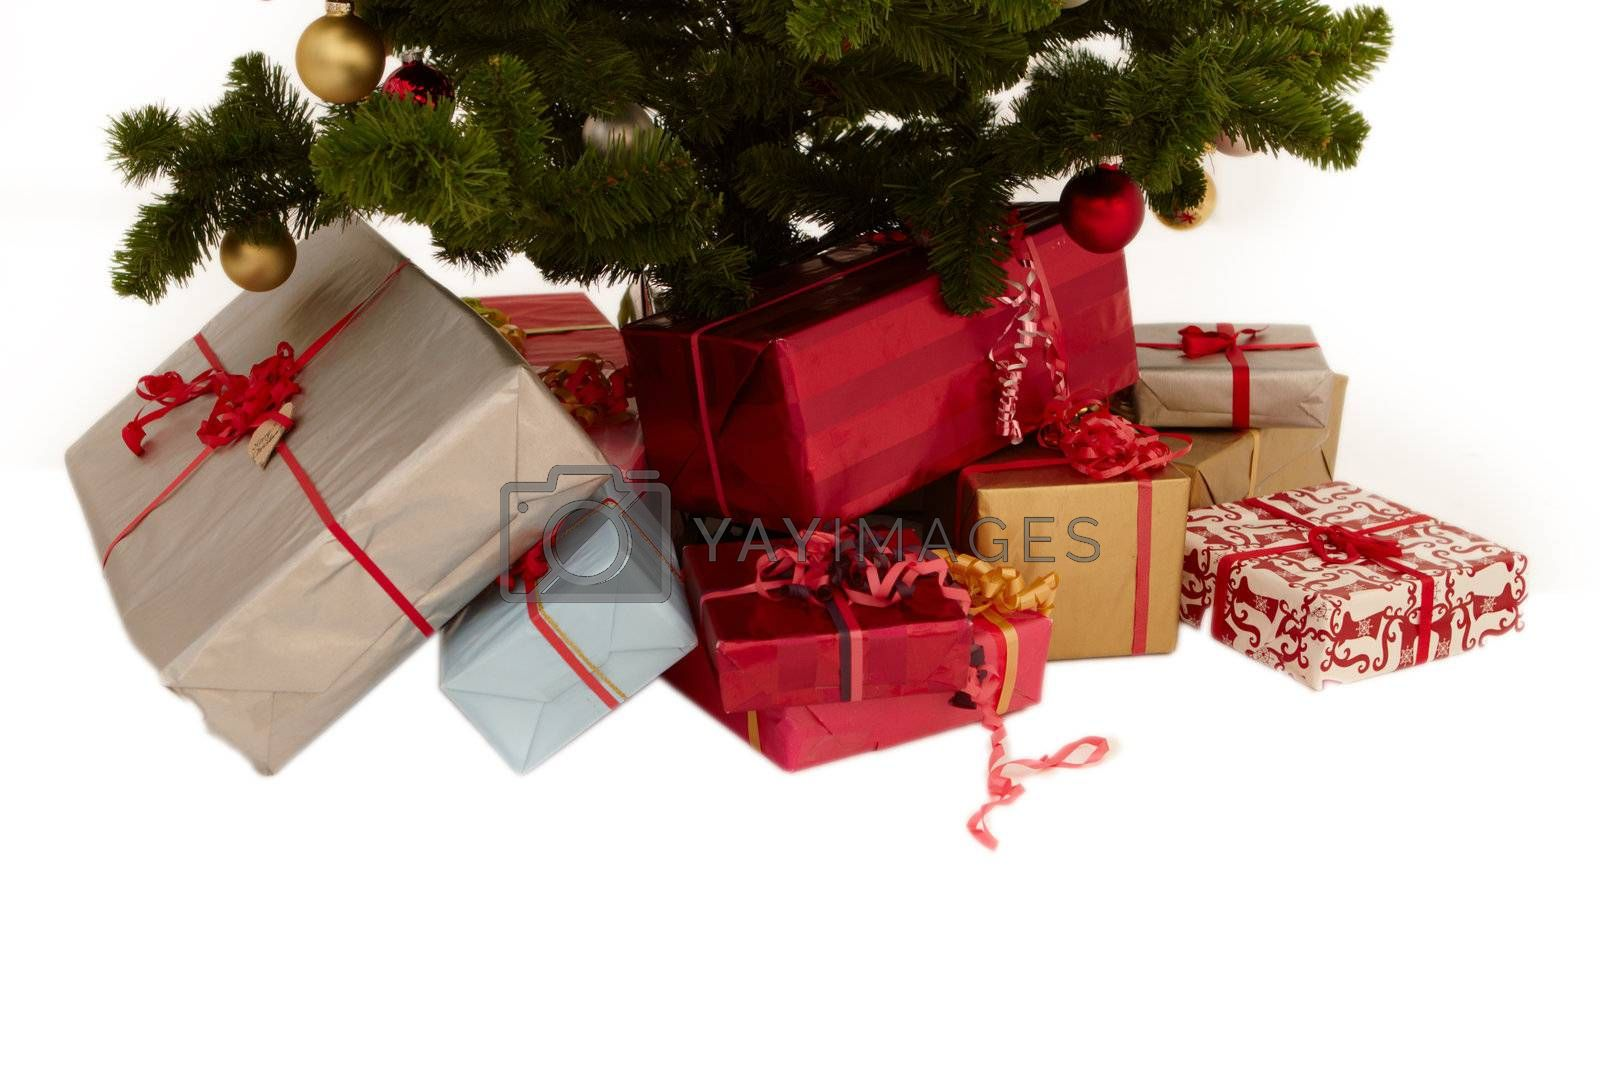 Royalty free image of Christmas tree - presents under a tree by FreedomImage